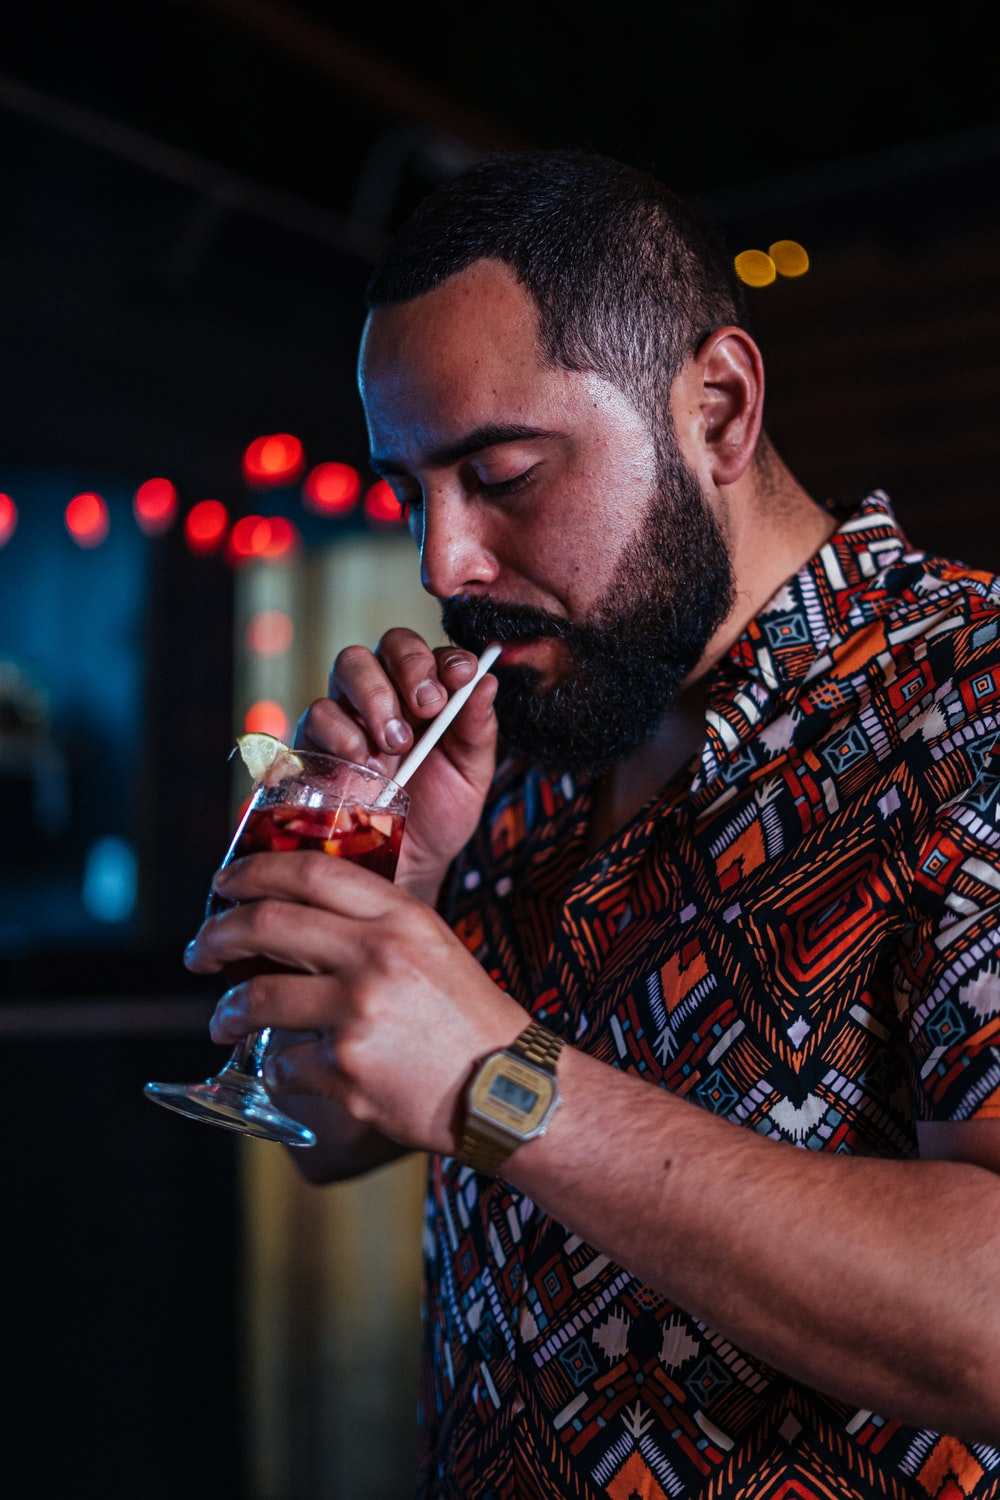 man in red and black plaid button up shirt drinking from clear drinking glass